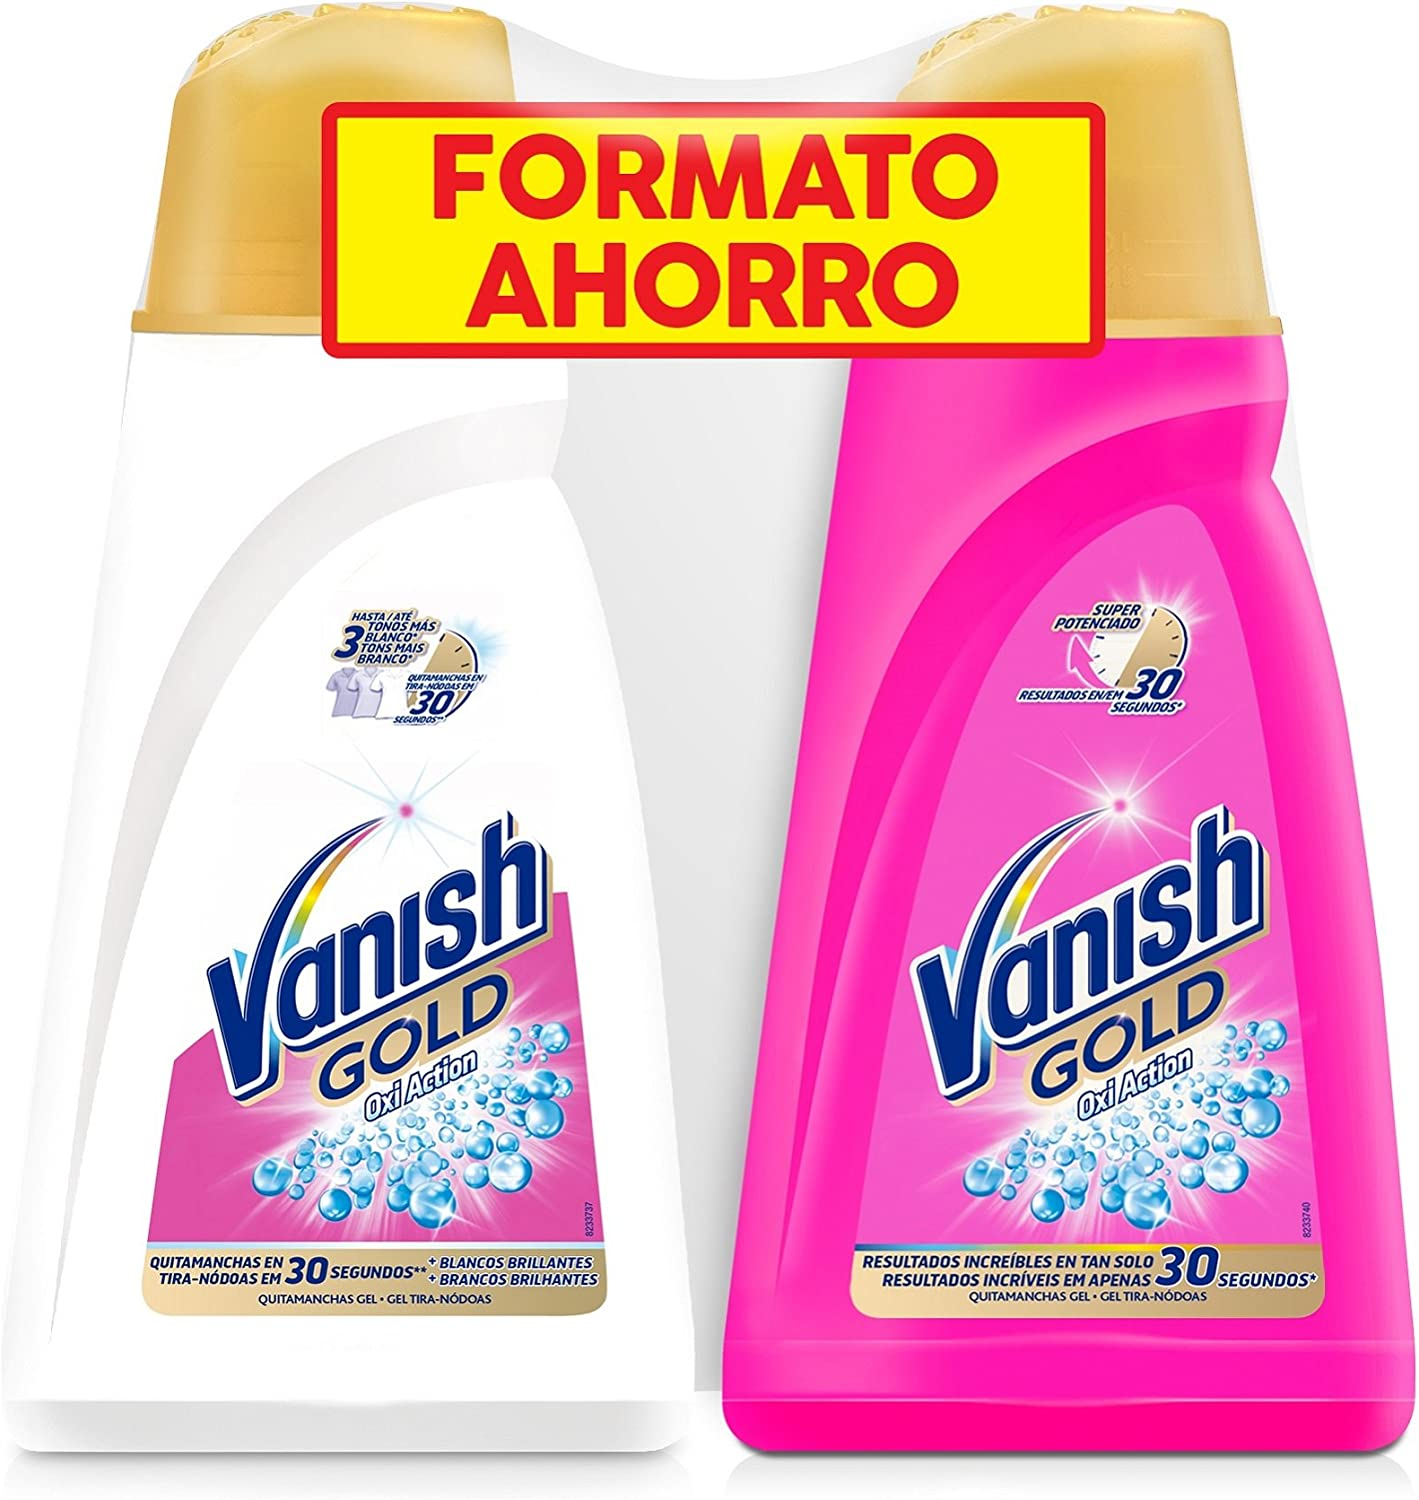 Vanish Gold Oxi Action White Quitamanchas Gel - Pack de 2 x 940 ml ...